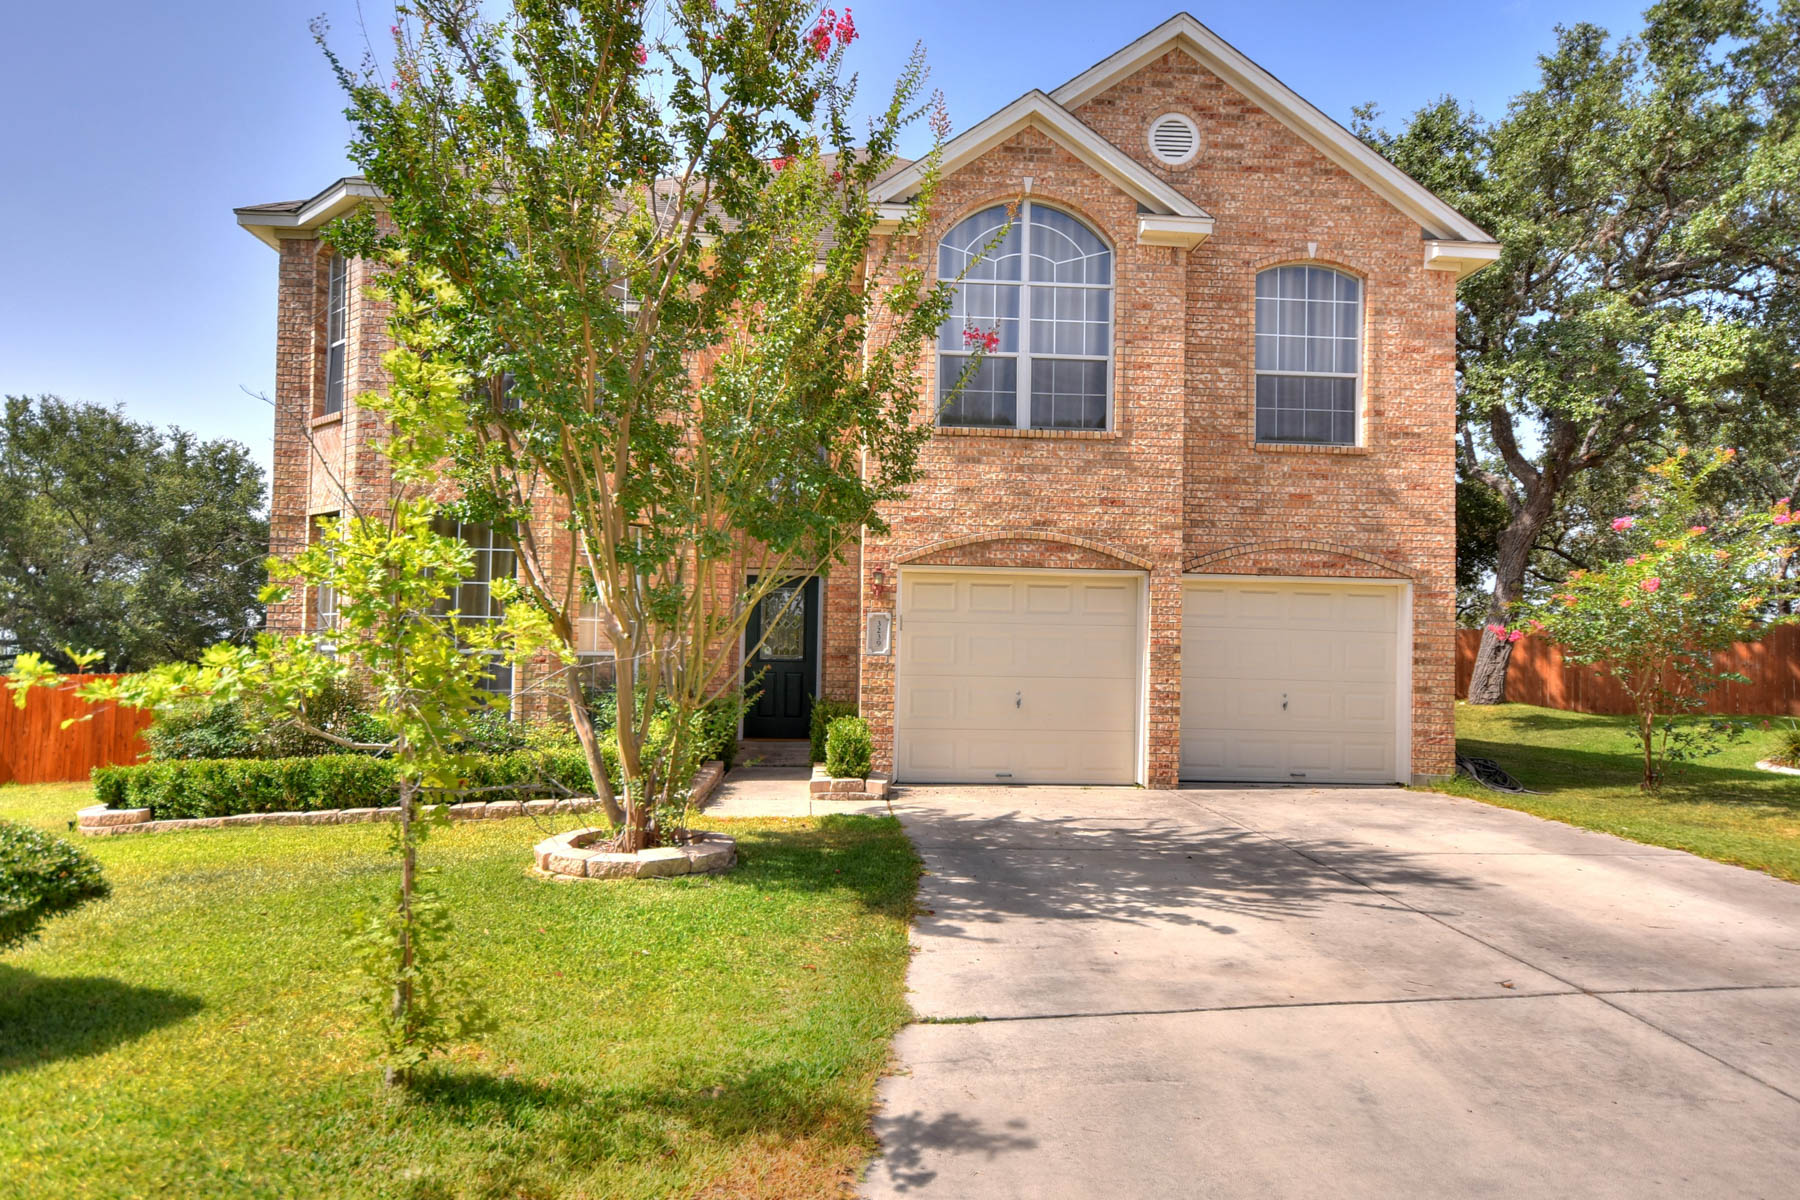 Additional photo for property listing at Great Location and Views in Redland Estates 3239 Sable Crossing San Antonio, Texas 78232 Estados Unidos